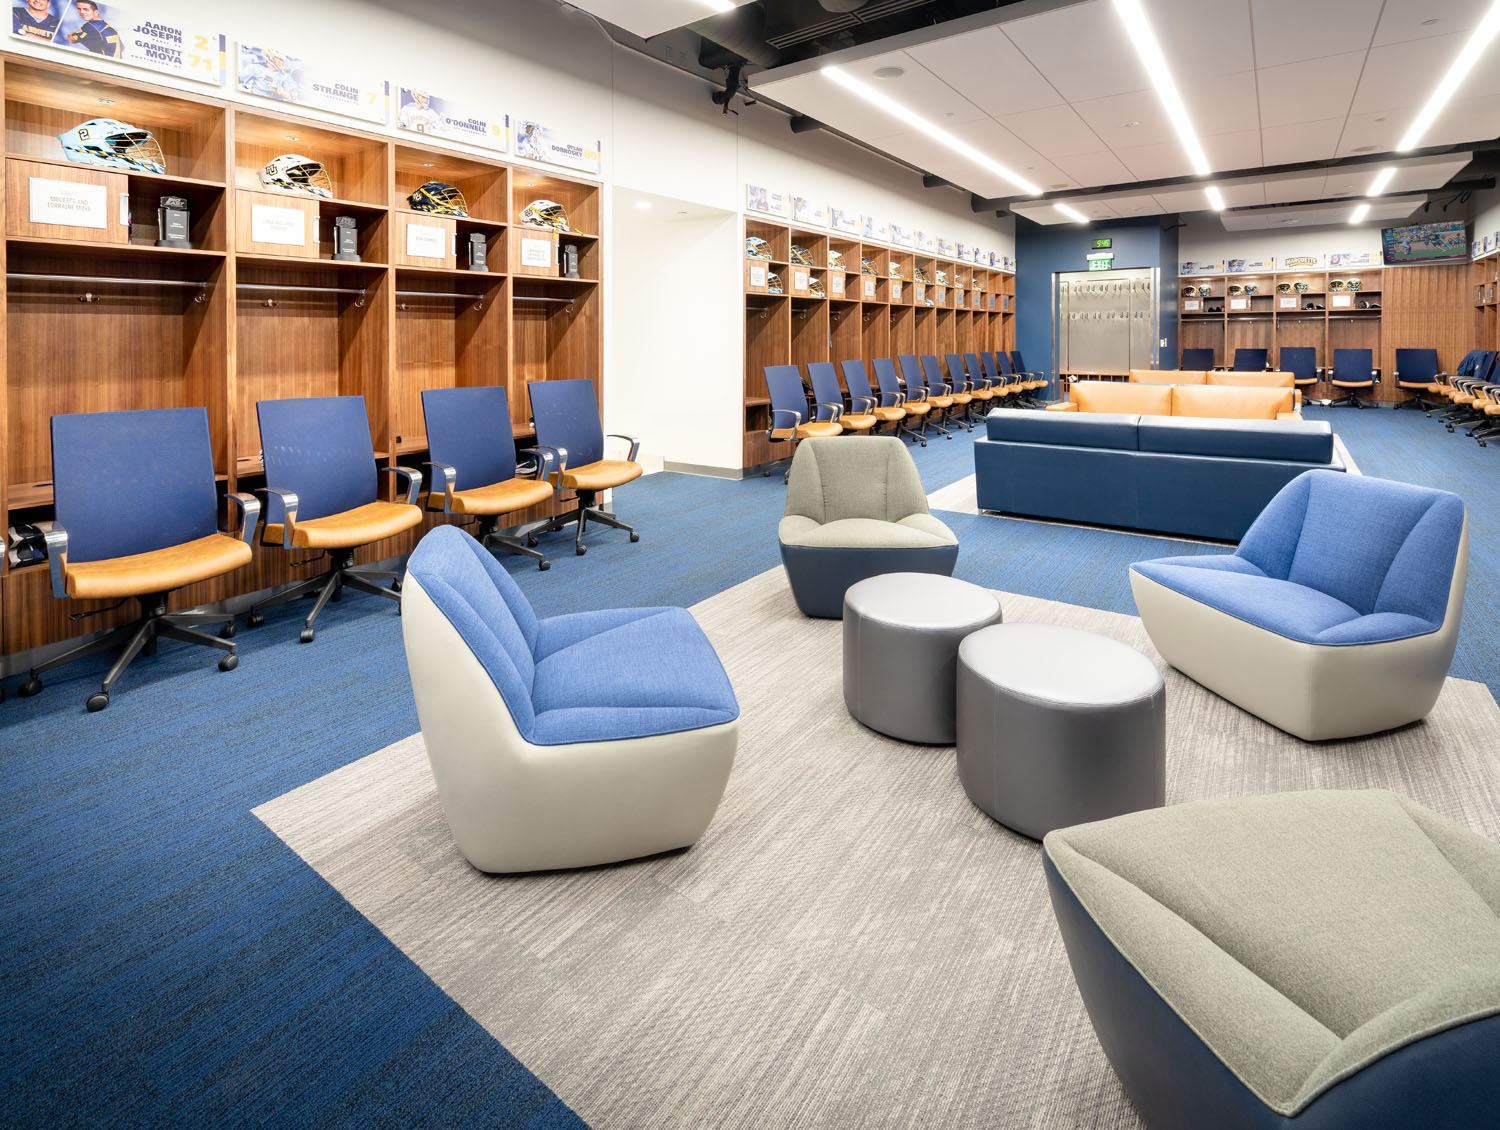 Marquette University - Athletic and Human Performance Research Center interior locker room 1